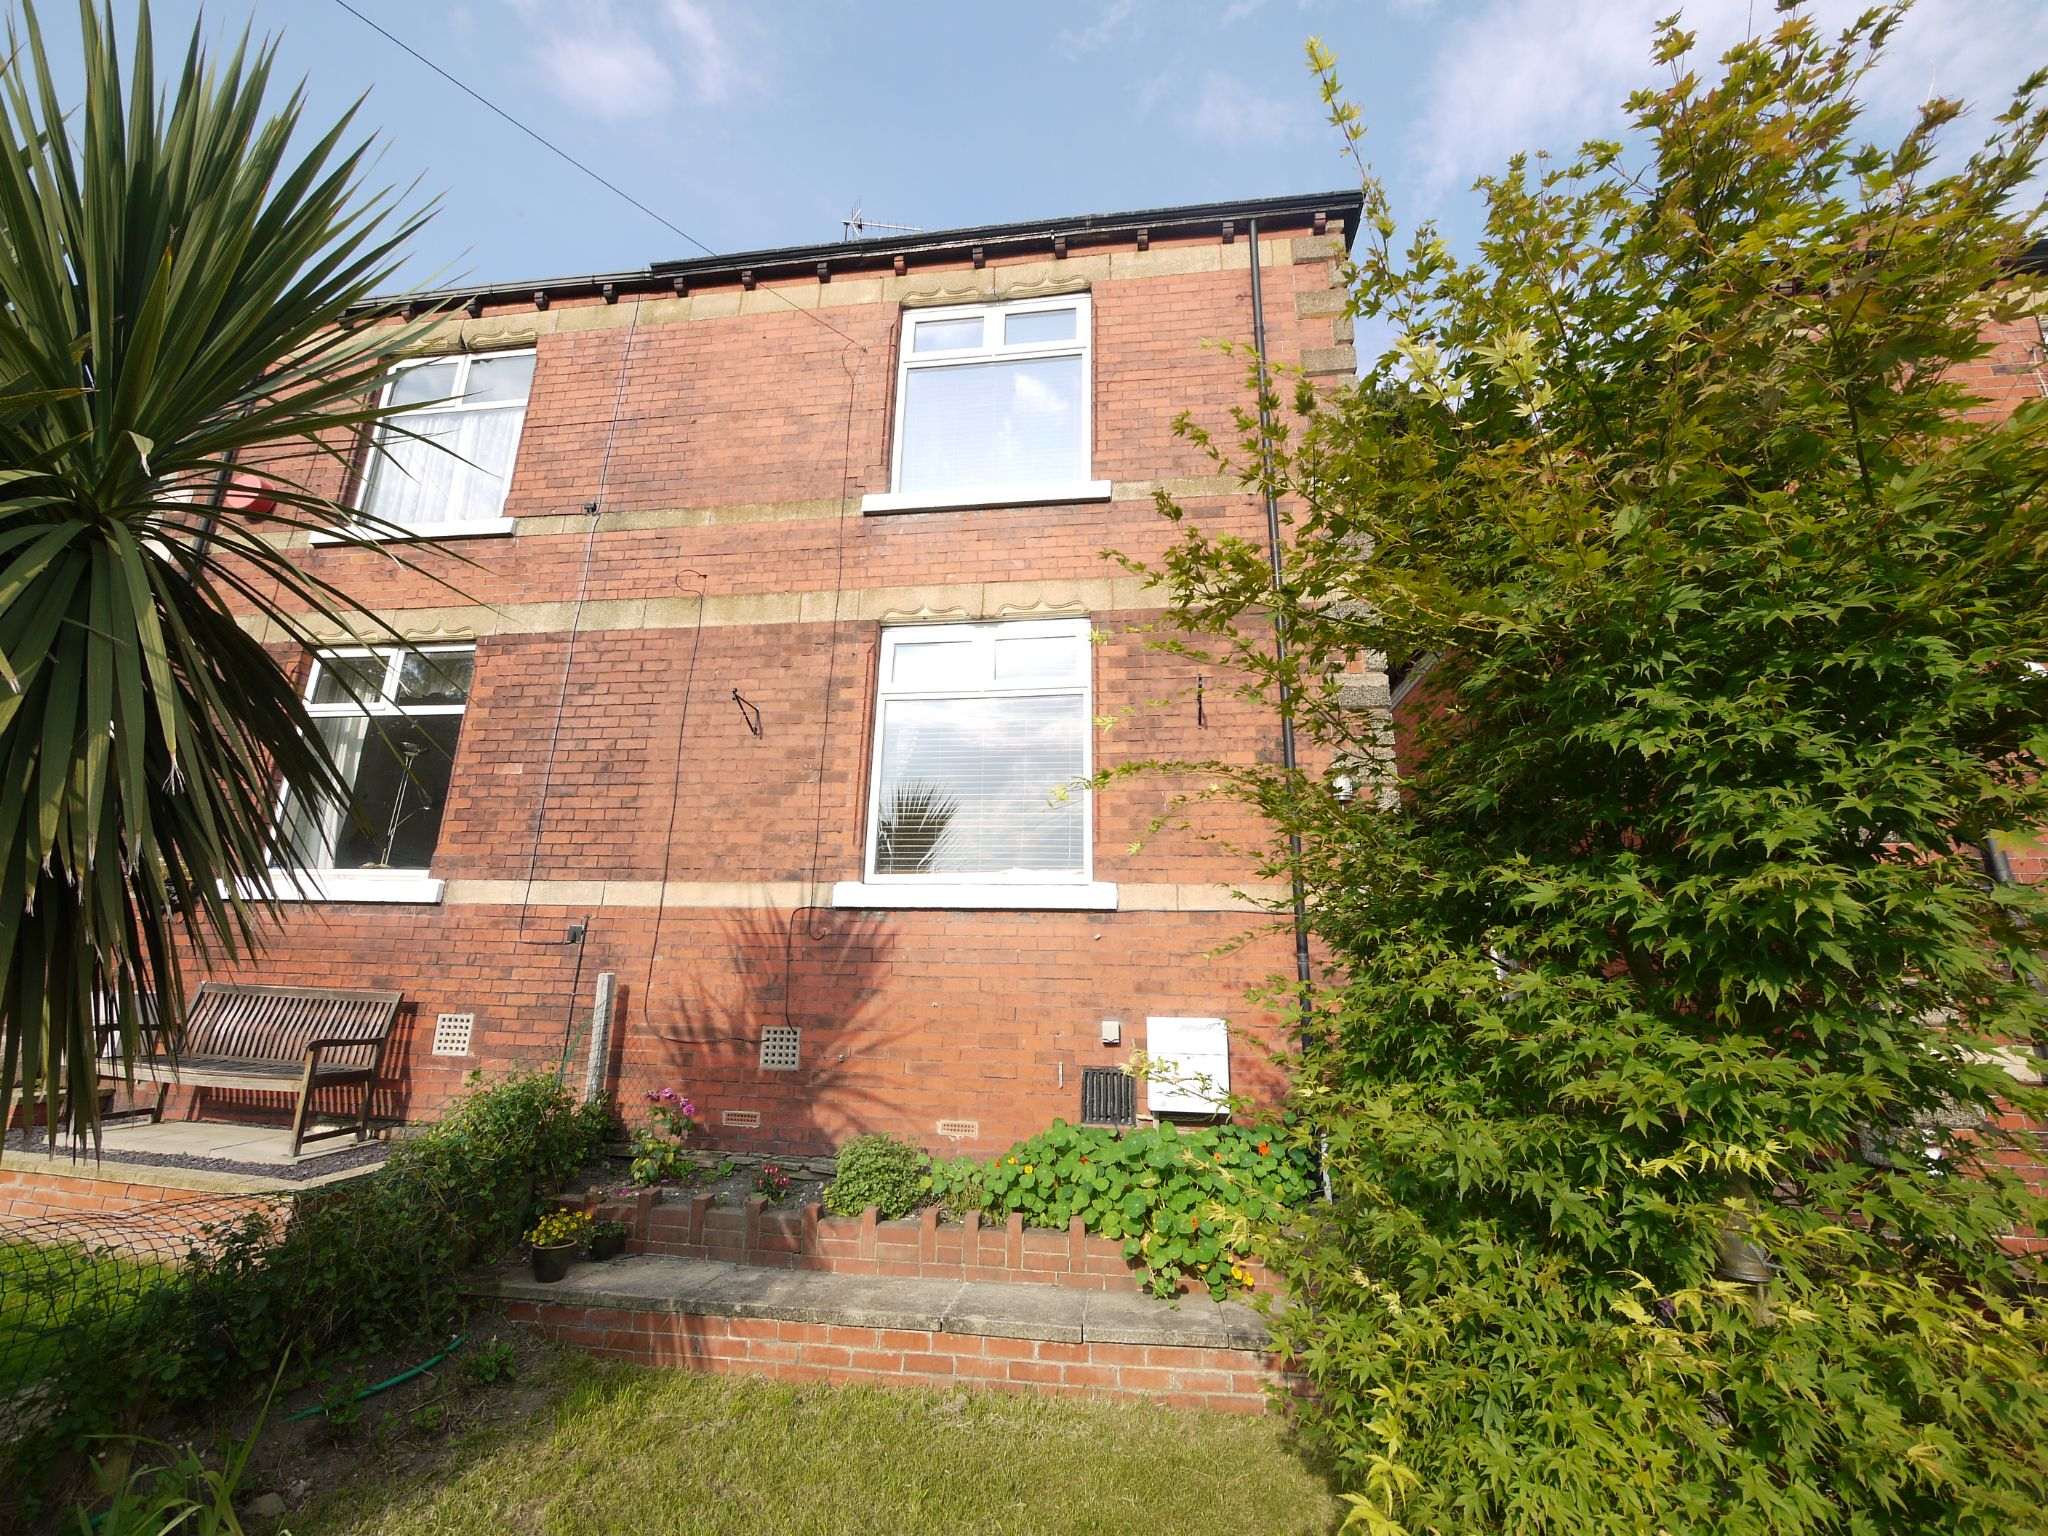 2 bedroom semi-detached house SSTC in Brighouse - Main.